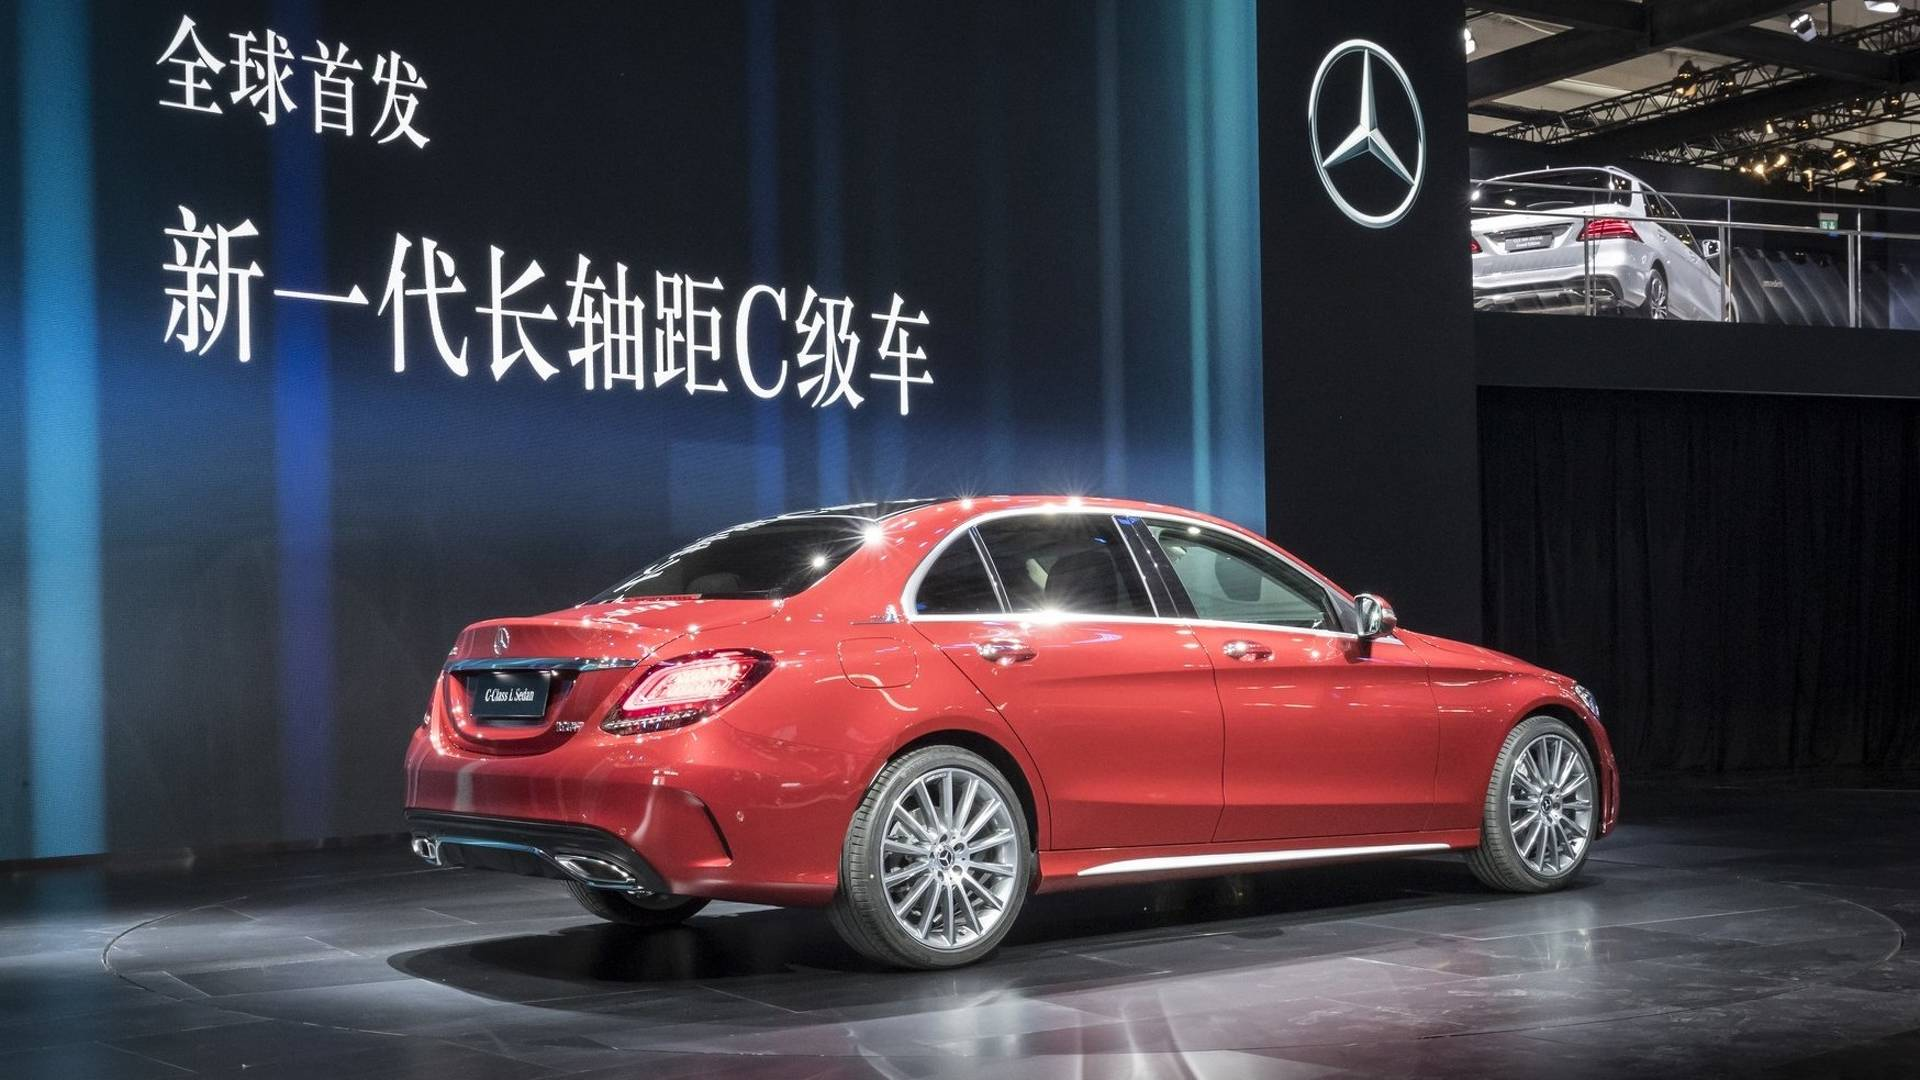 2019 Mercedes C Class L Brings Its Extended Wheelbase To Beijing